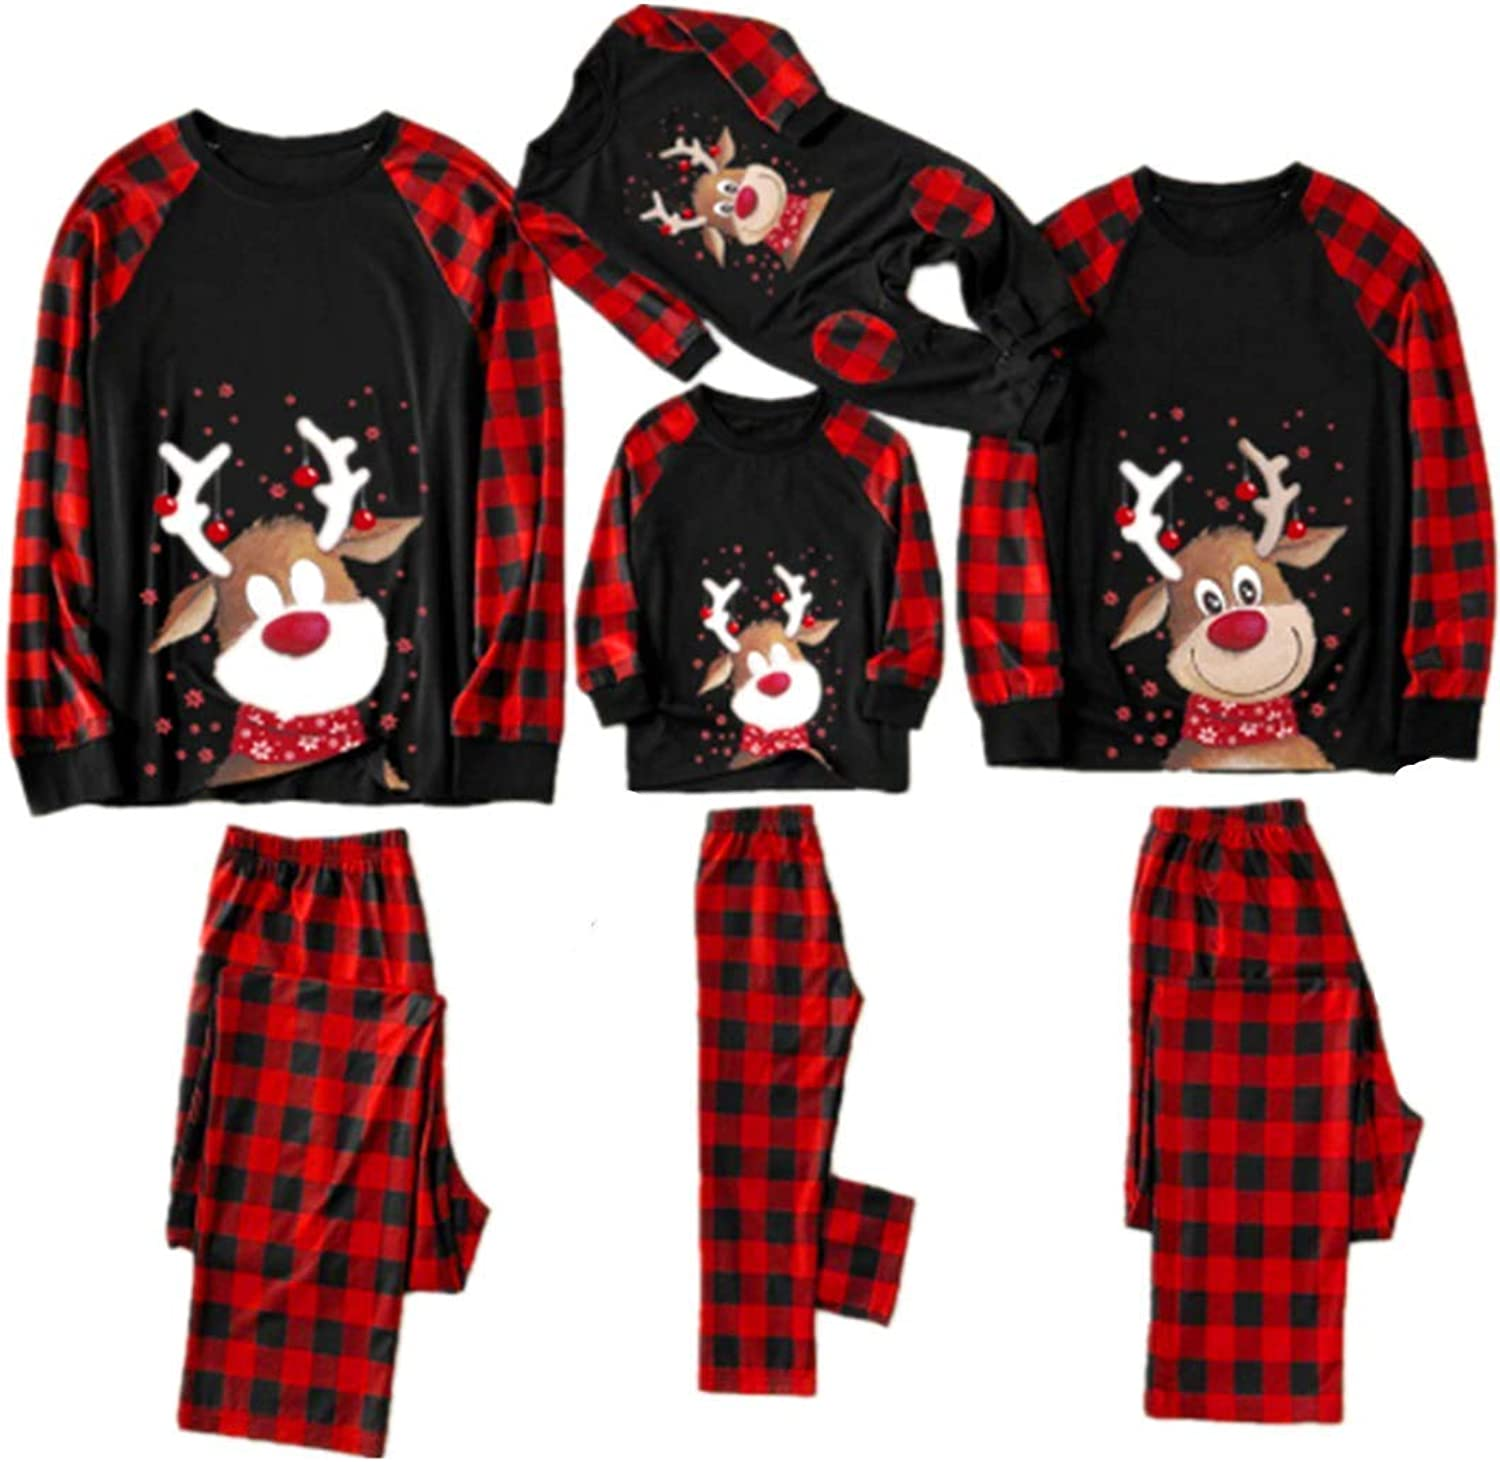 Christmas Matching Family Pajamas Set Xmas Pjs with Letters Print Shirt Red Plaid Pants Homewear Sleepwear Outfits